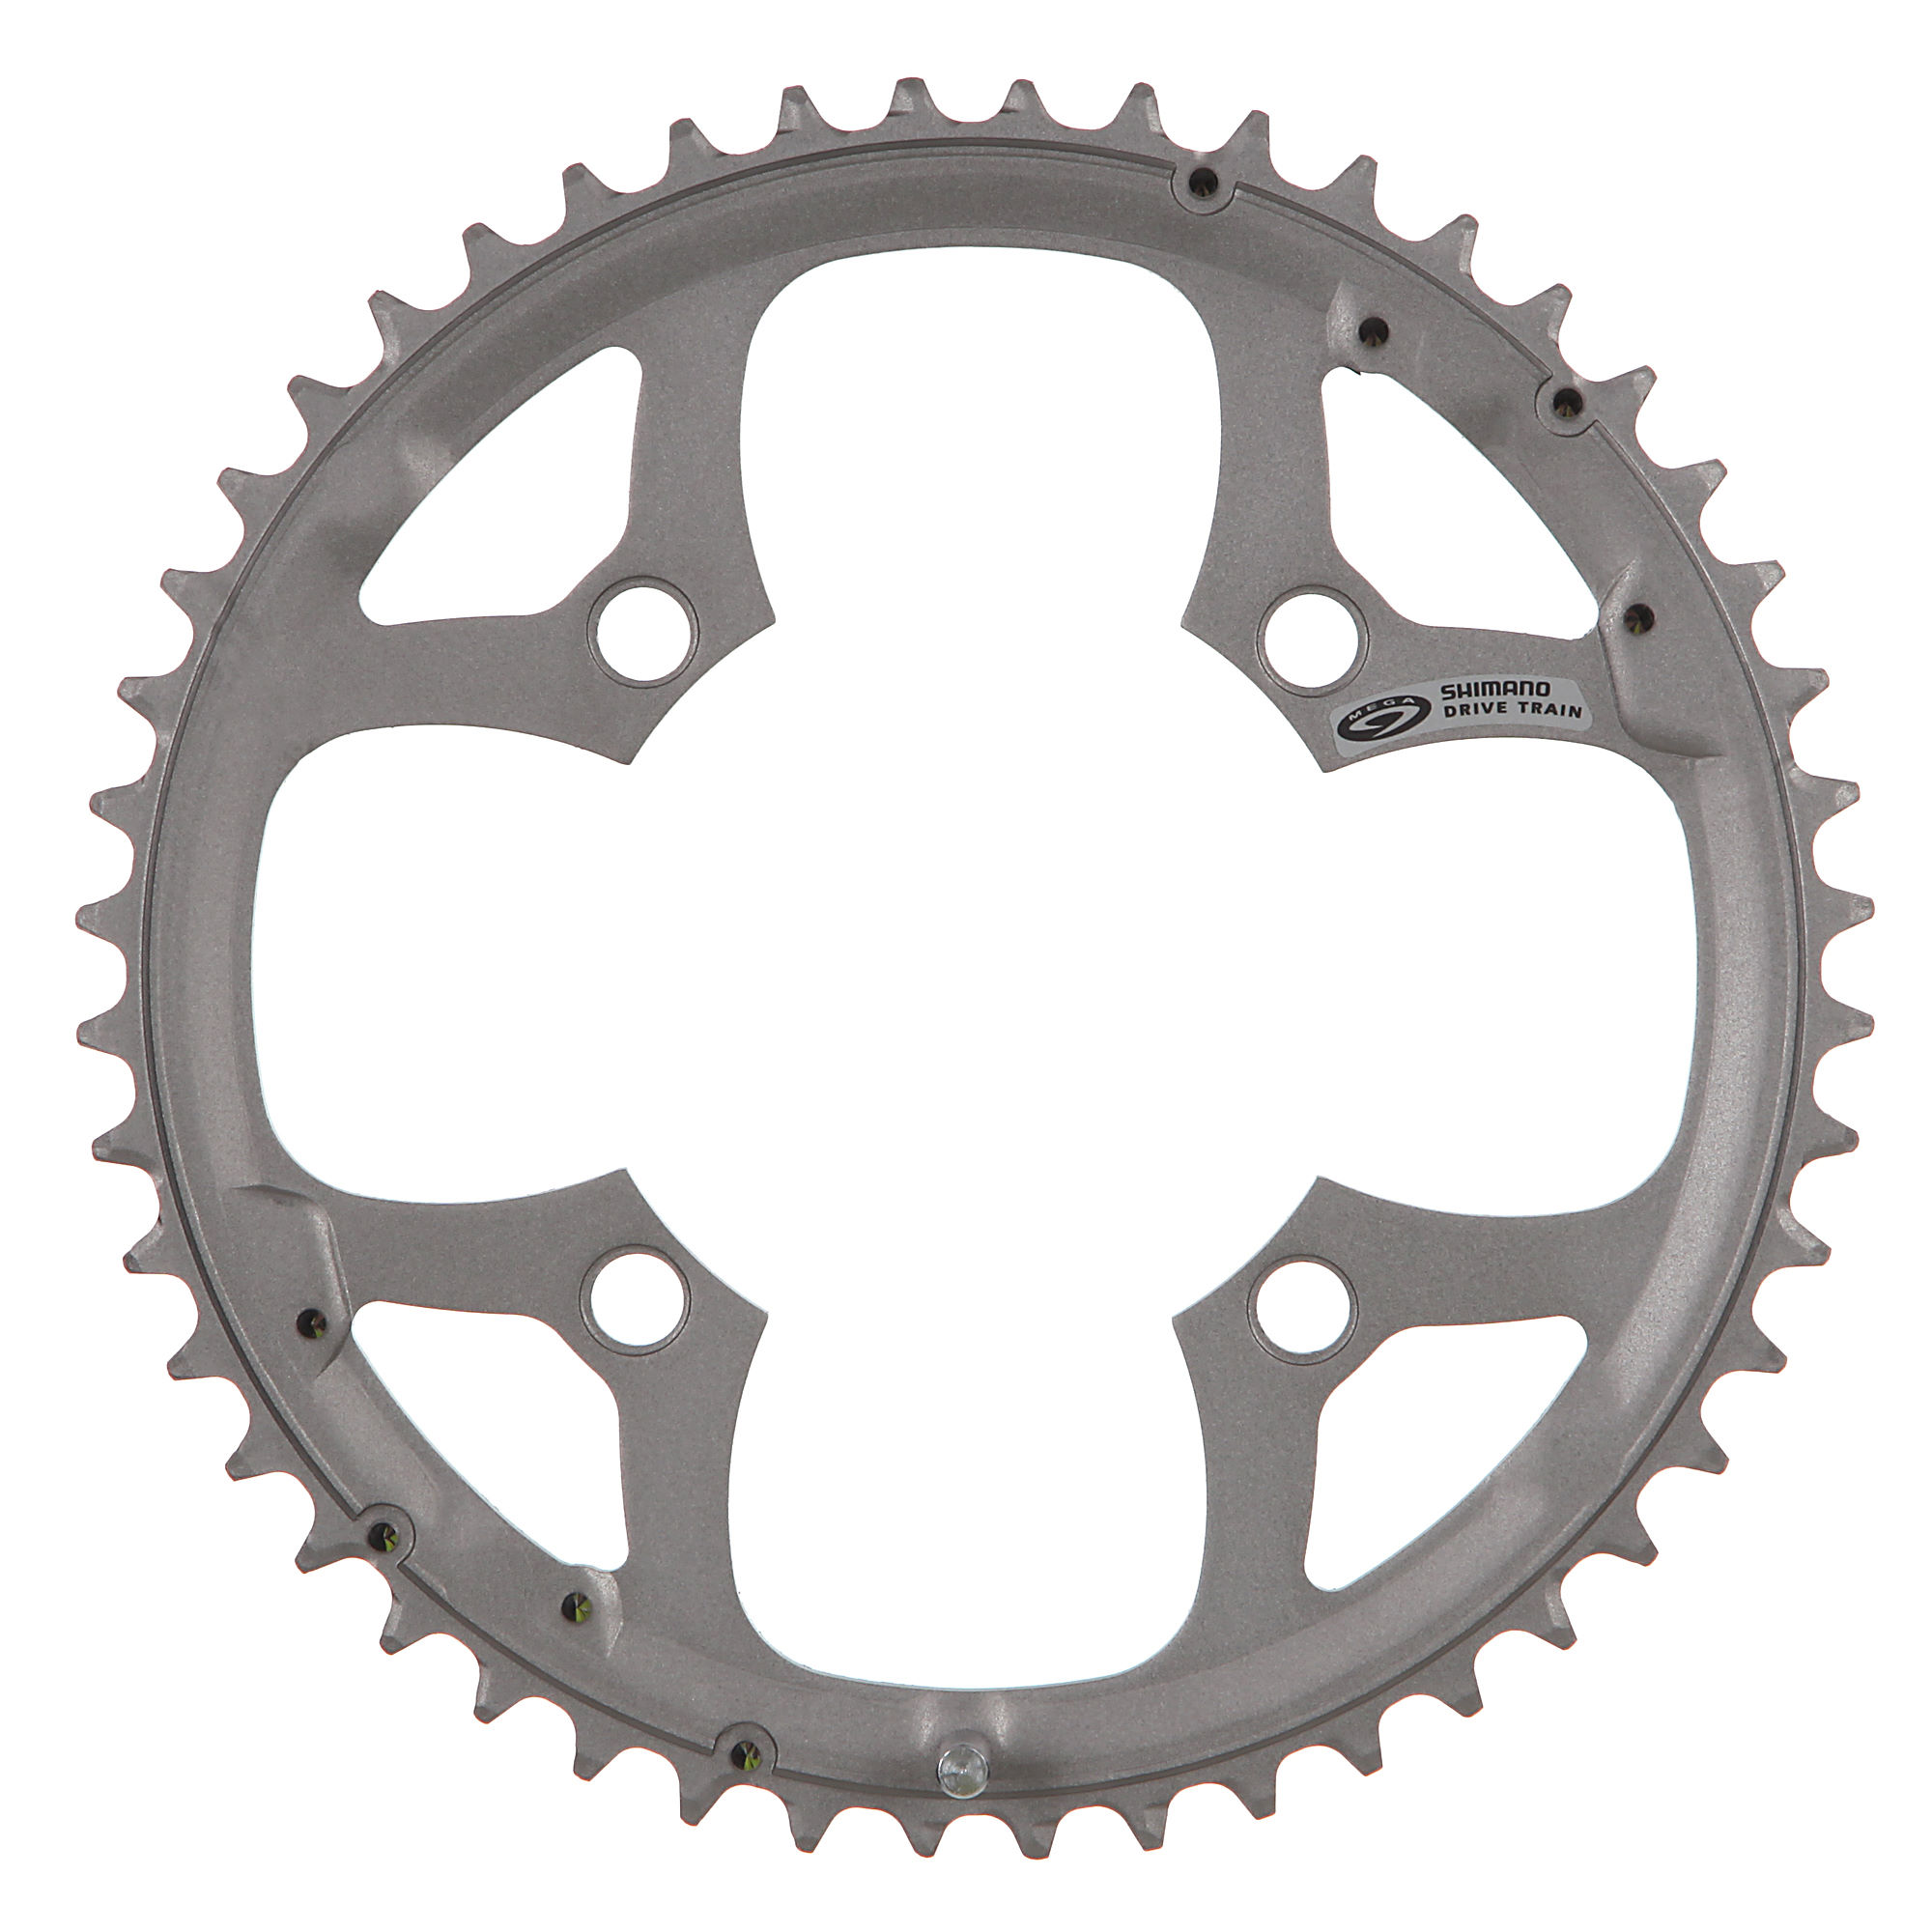 Shimano Deore FC-M510 48t 9 Speed 4 Bolt Silver Outer Chainring